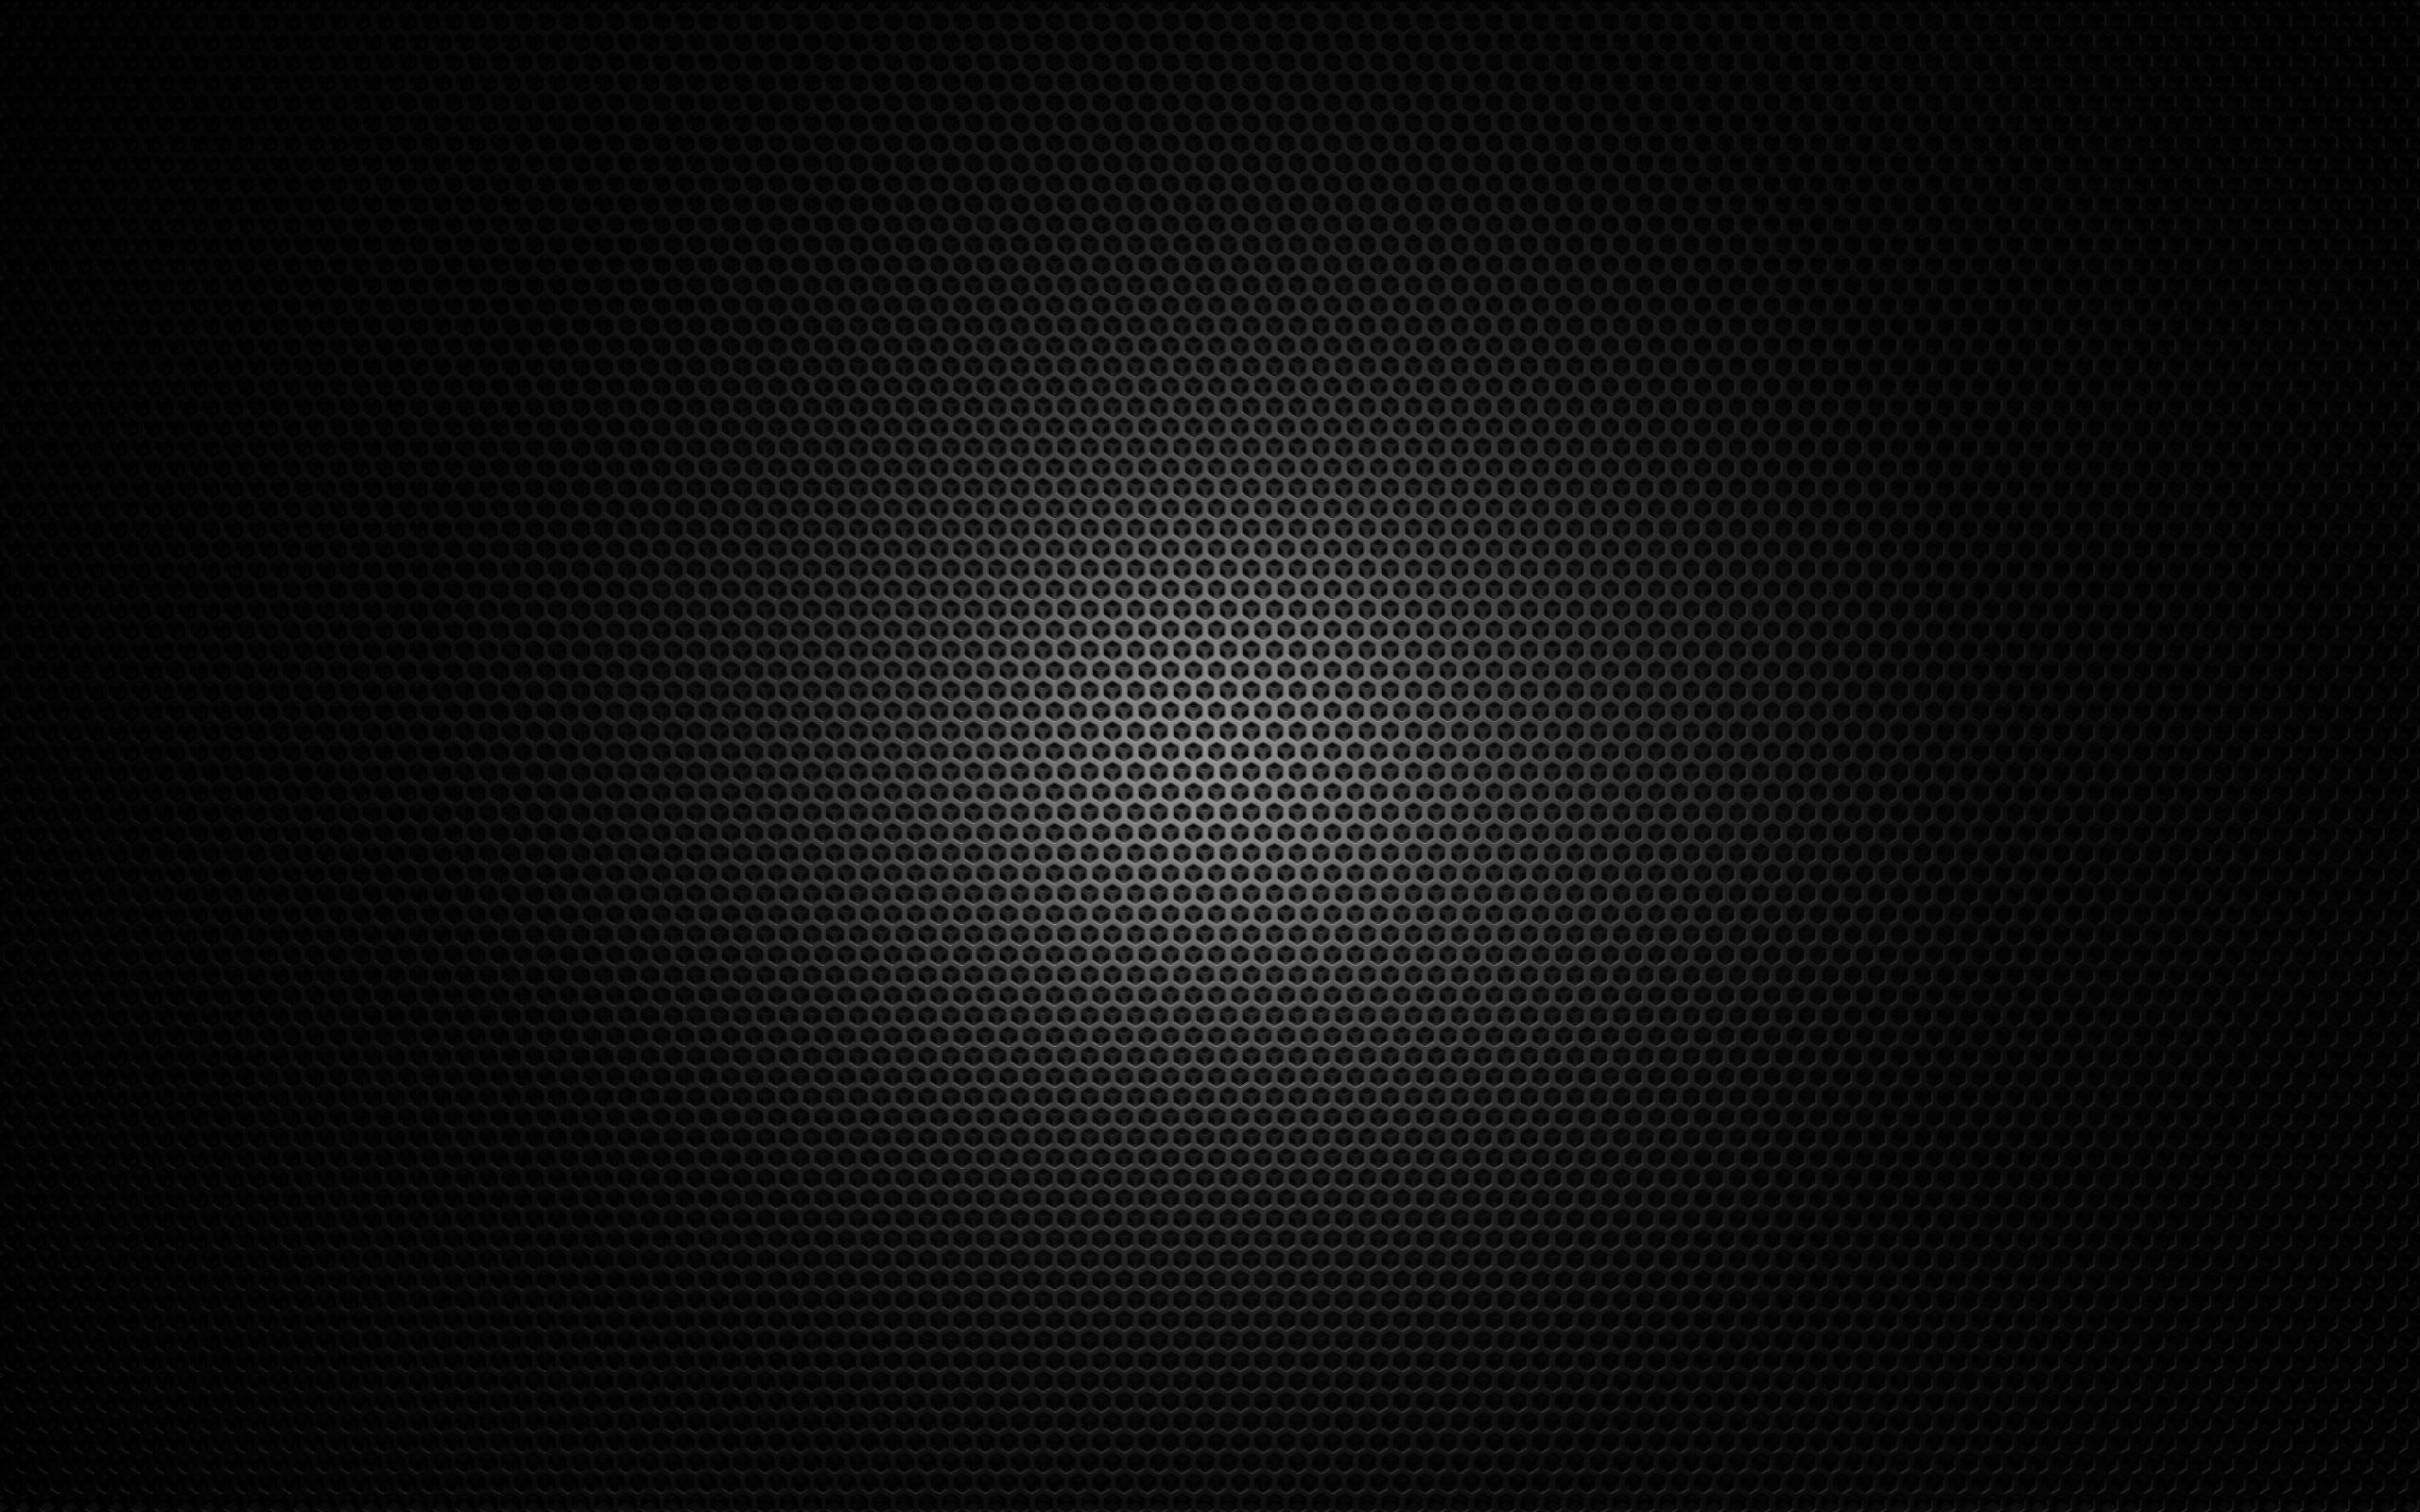 Black Carbon Wallpapers 2560x1600